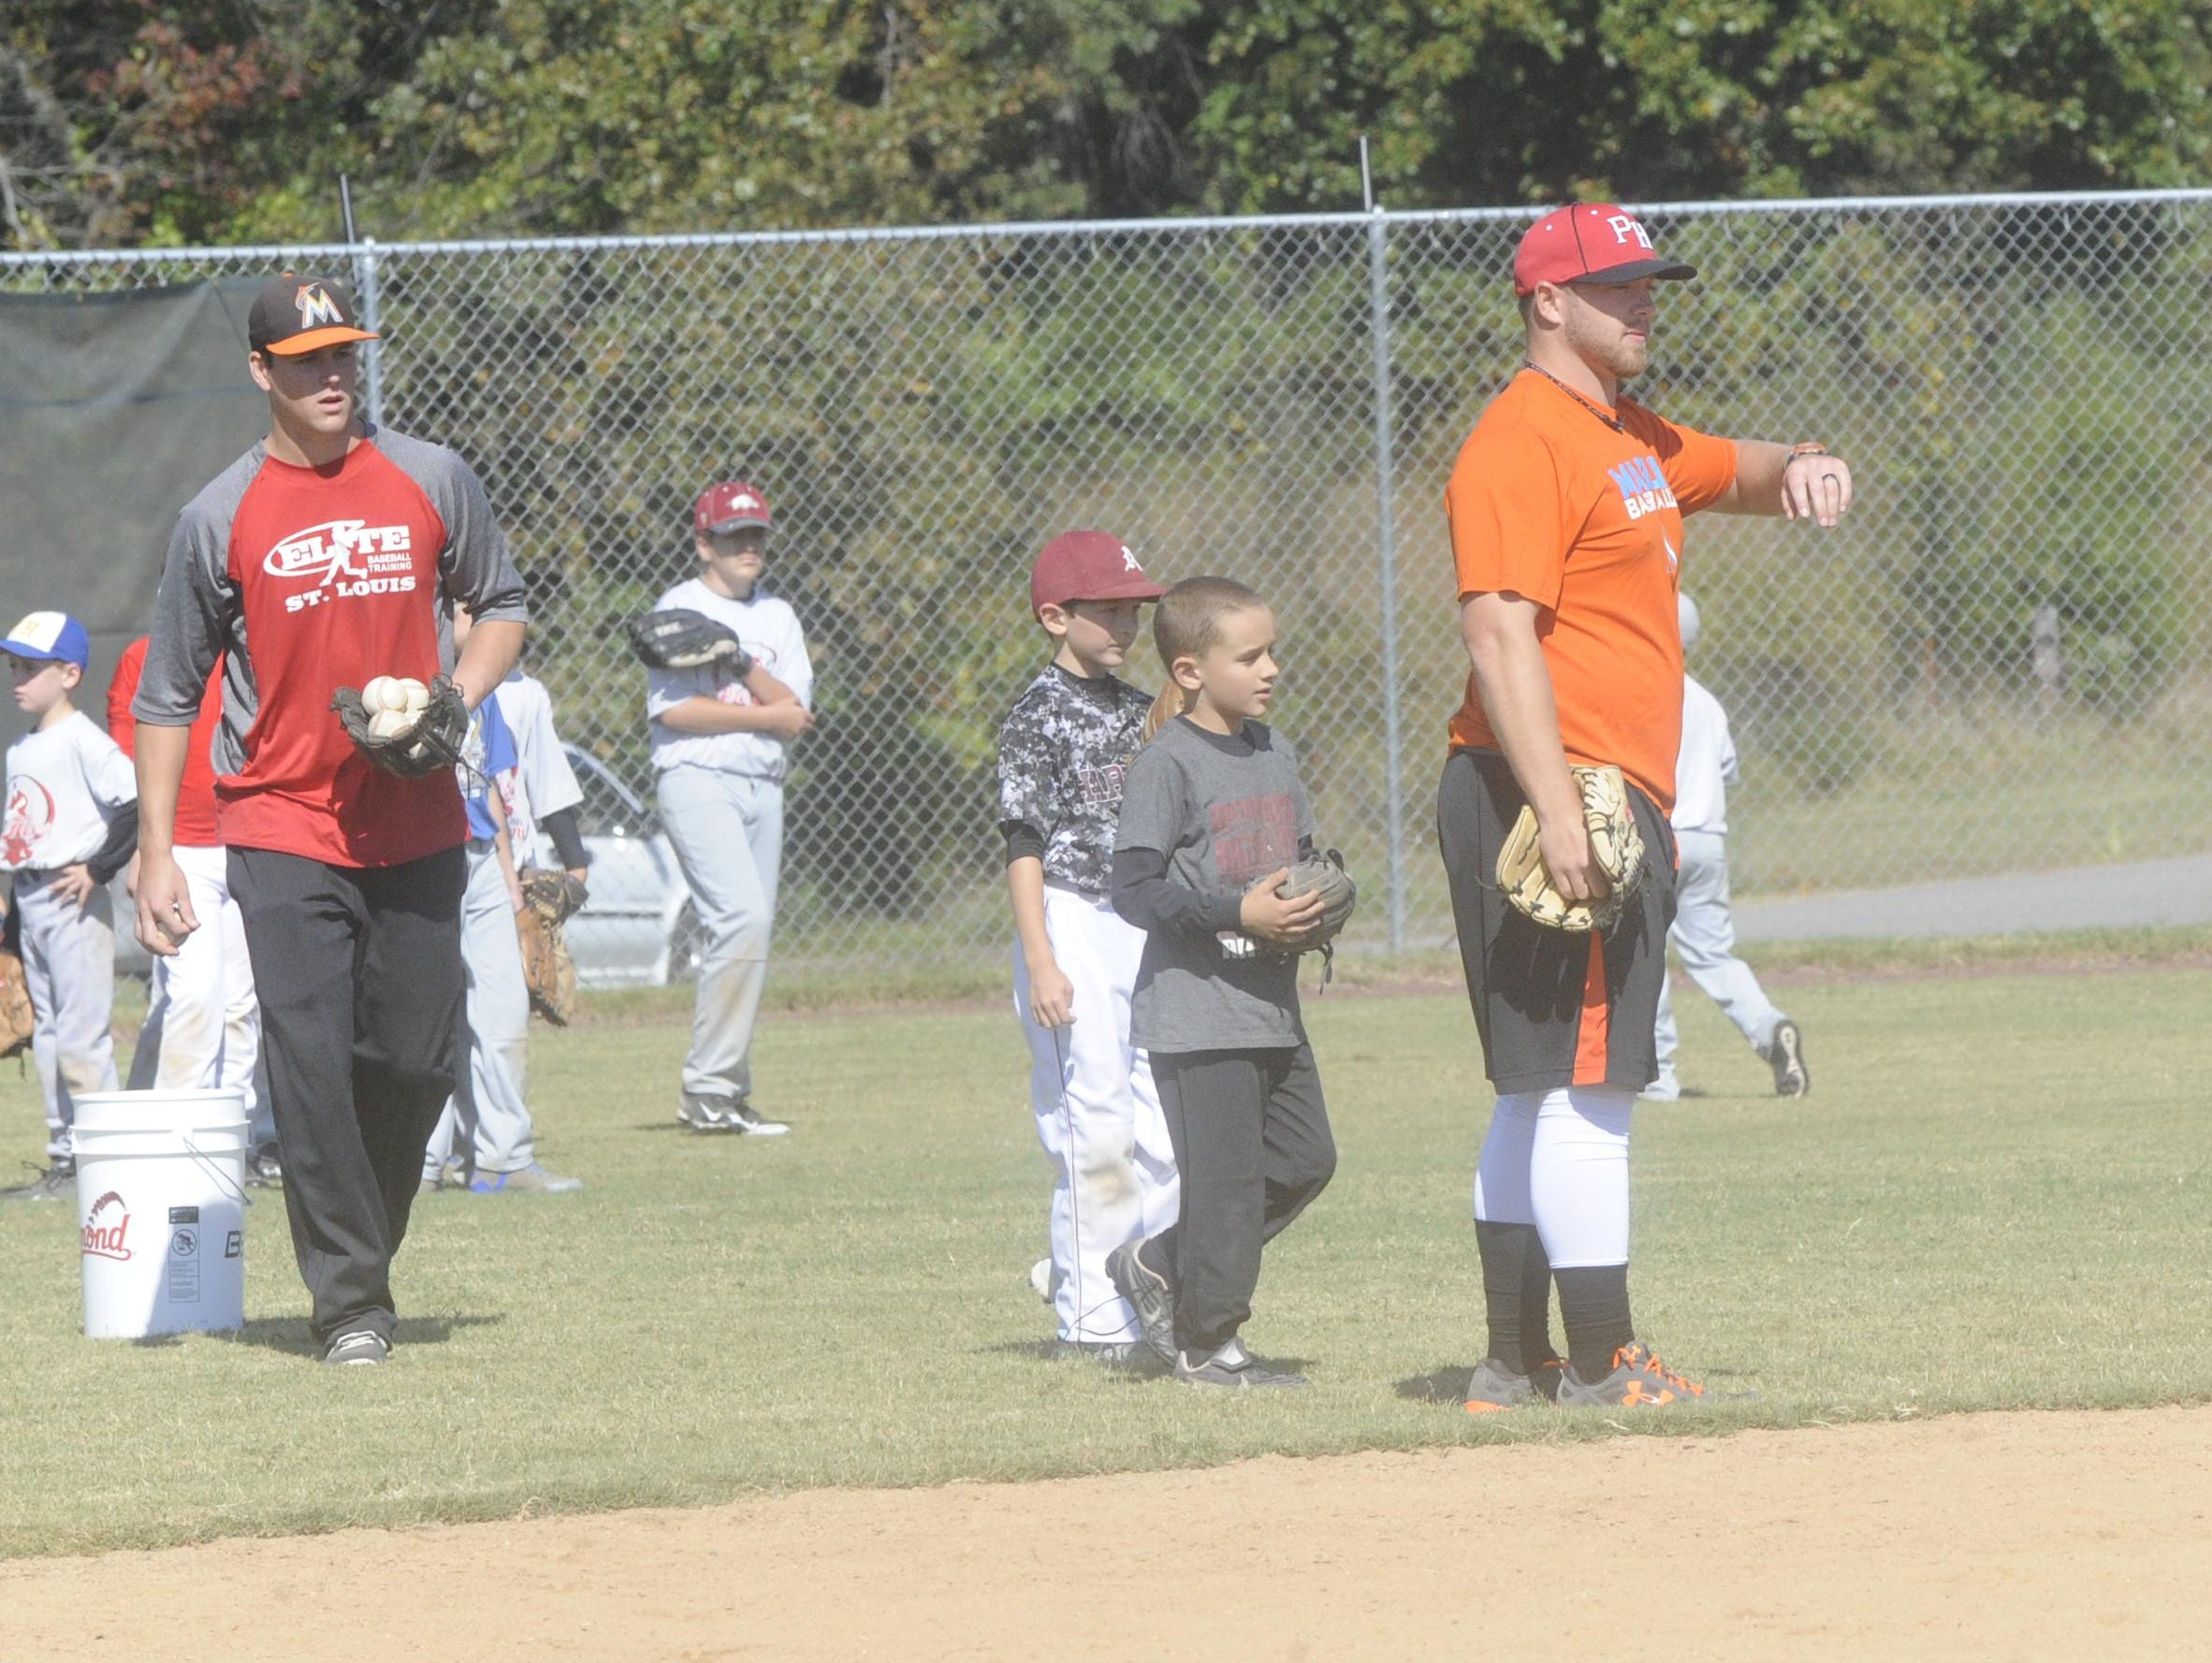 Former Arkansas Razorbacks Brian Anderson, left, and Colby Suggs, right, instruct players during the ProHogs Baseball Camp on Saturday at Clysta Willett Park.